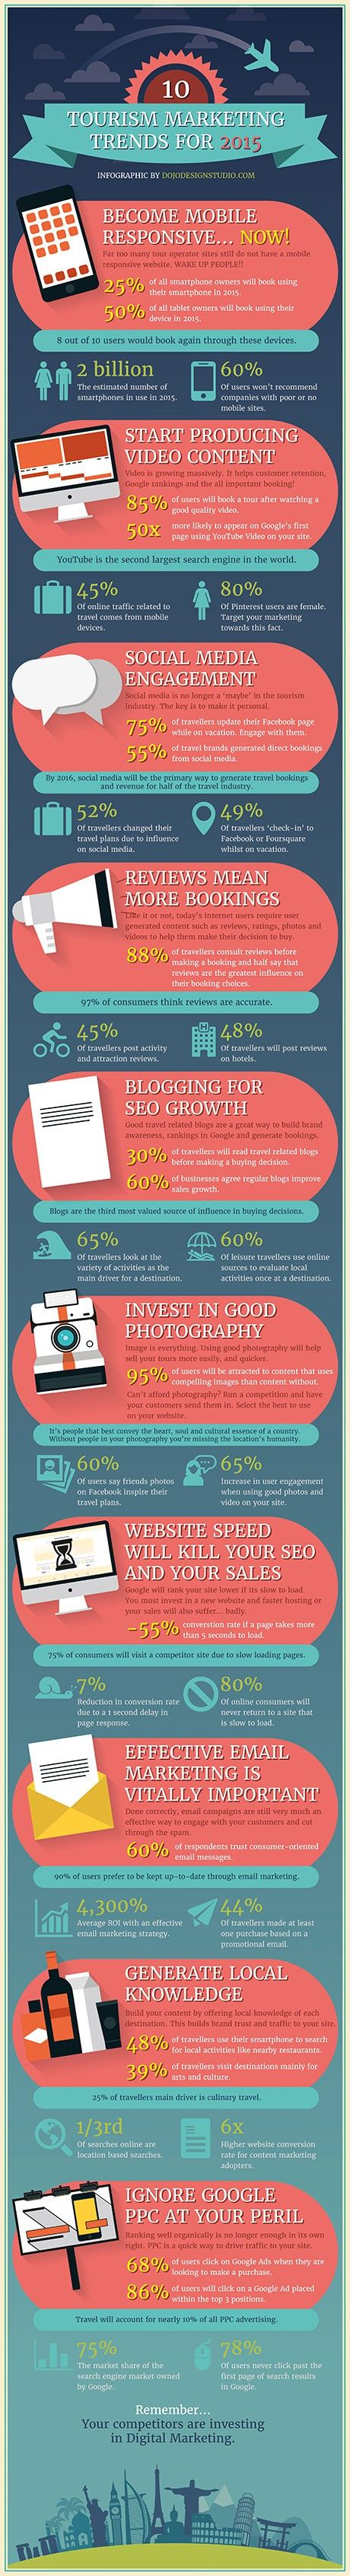 Top 10 Tourism Marketing Trends for 2015 | Visual.ly